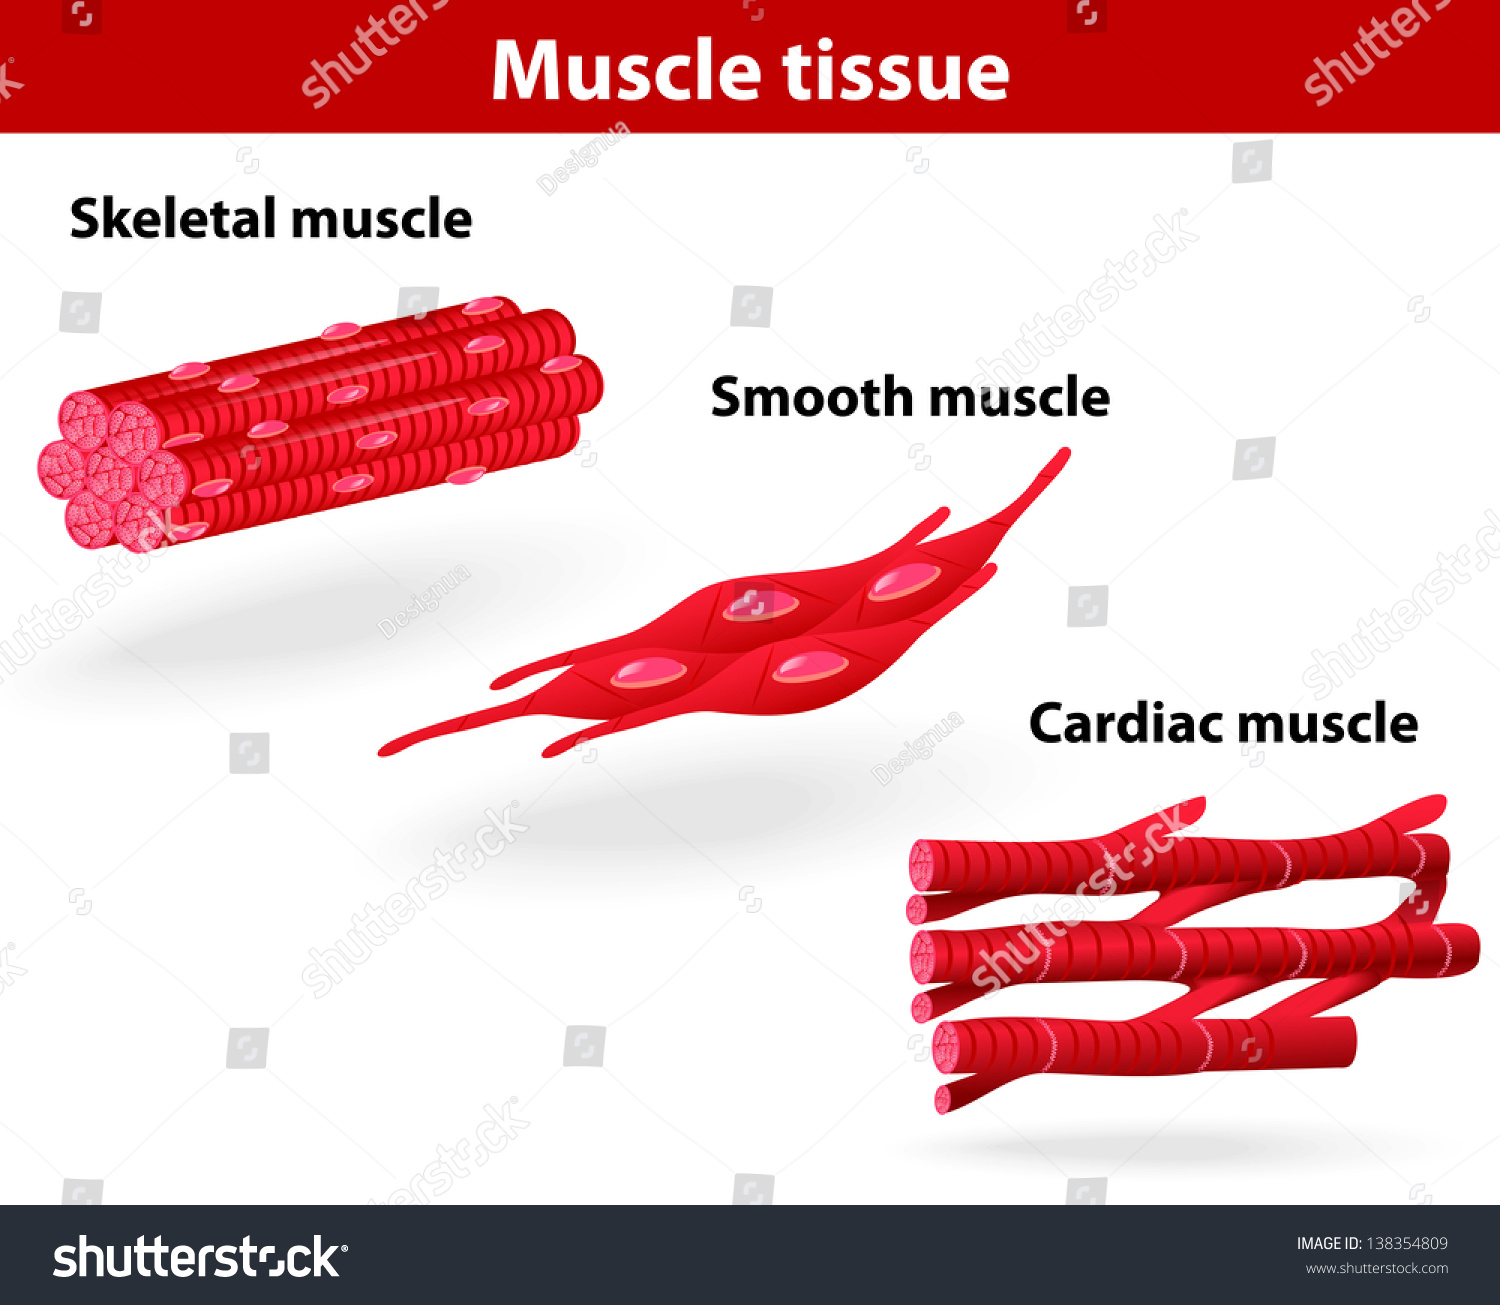 Free photo: Muscle tissue - research, science, muscular - Non ...